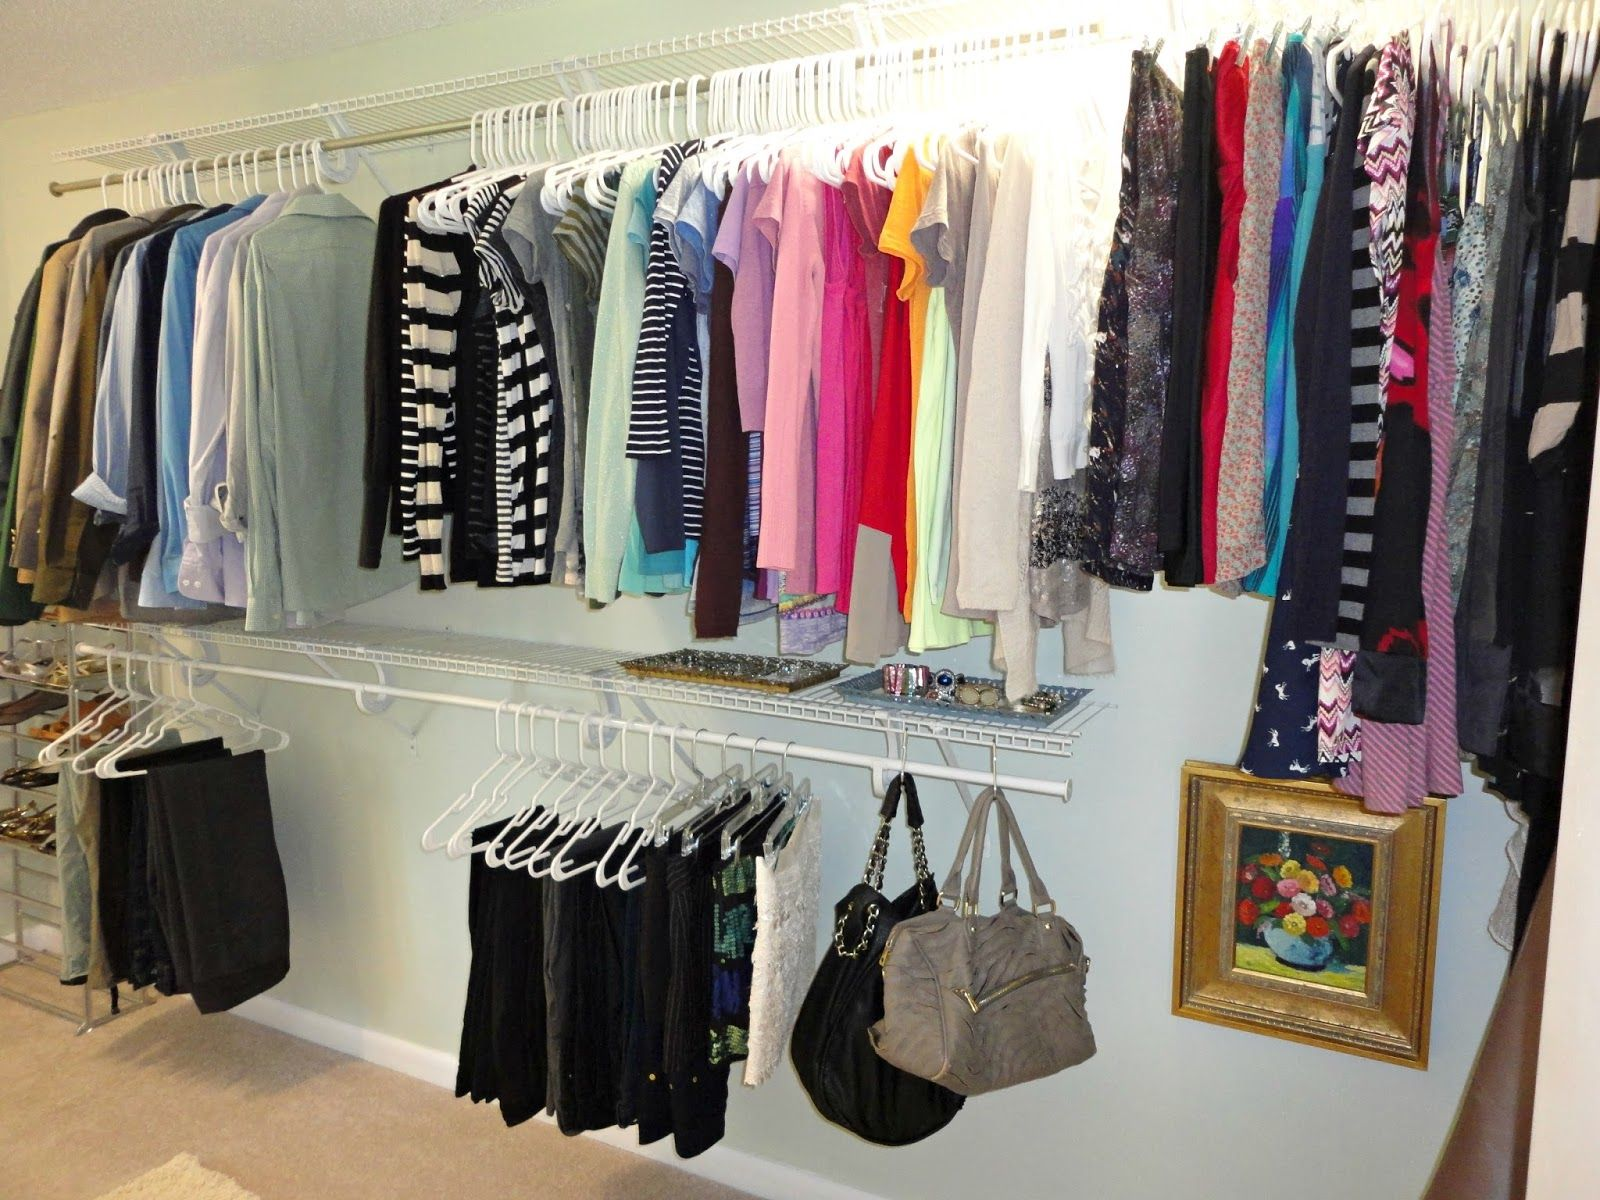 Closet Organization Ideas On A Budget Part - 20: Organization Ideas · How To Turn Your Closet Into A Space You Love For Just  $50! Love This